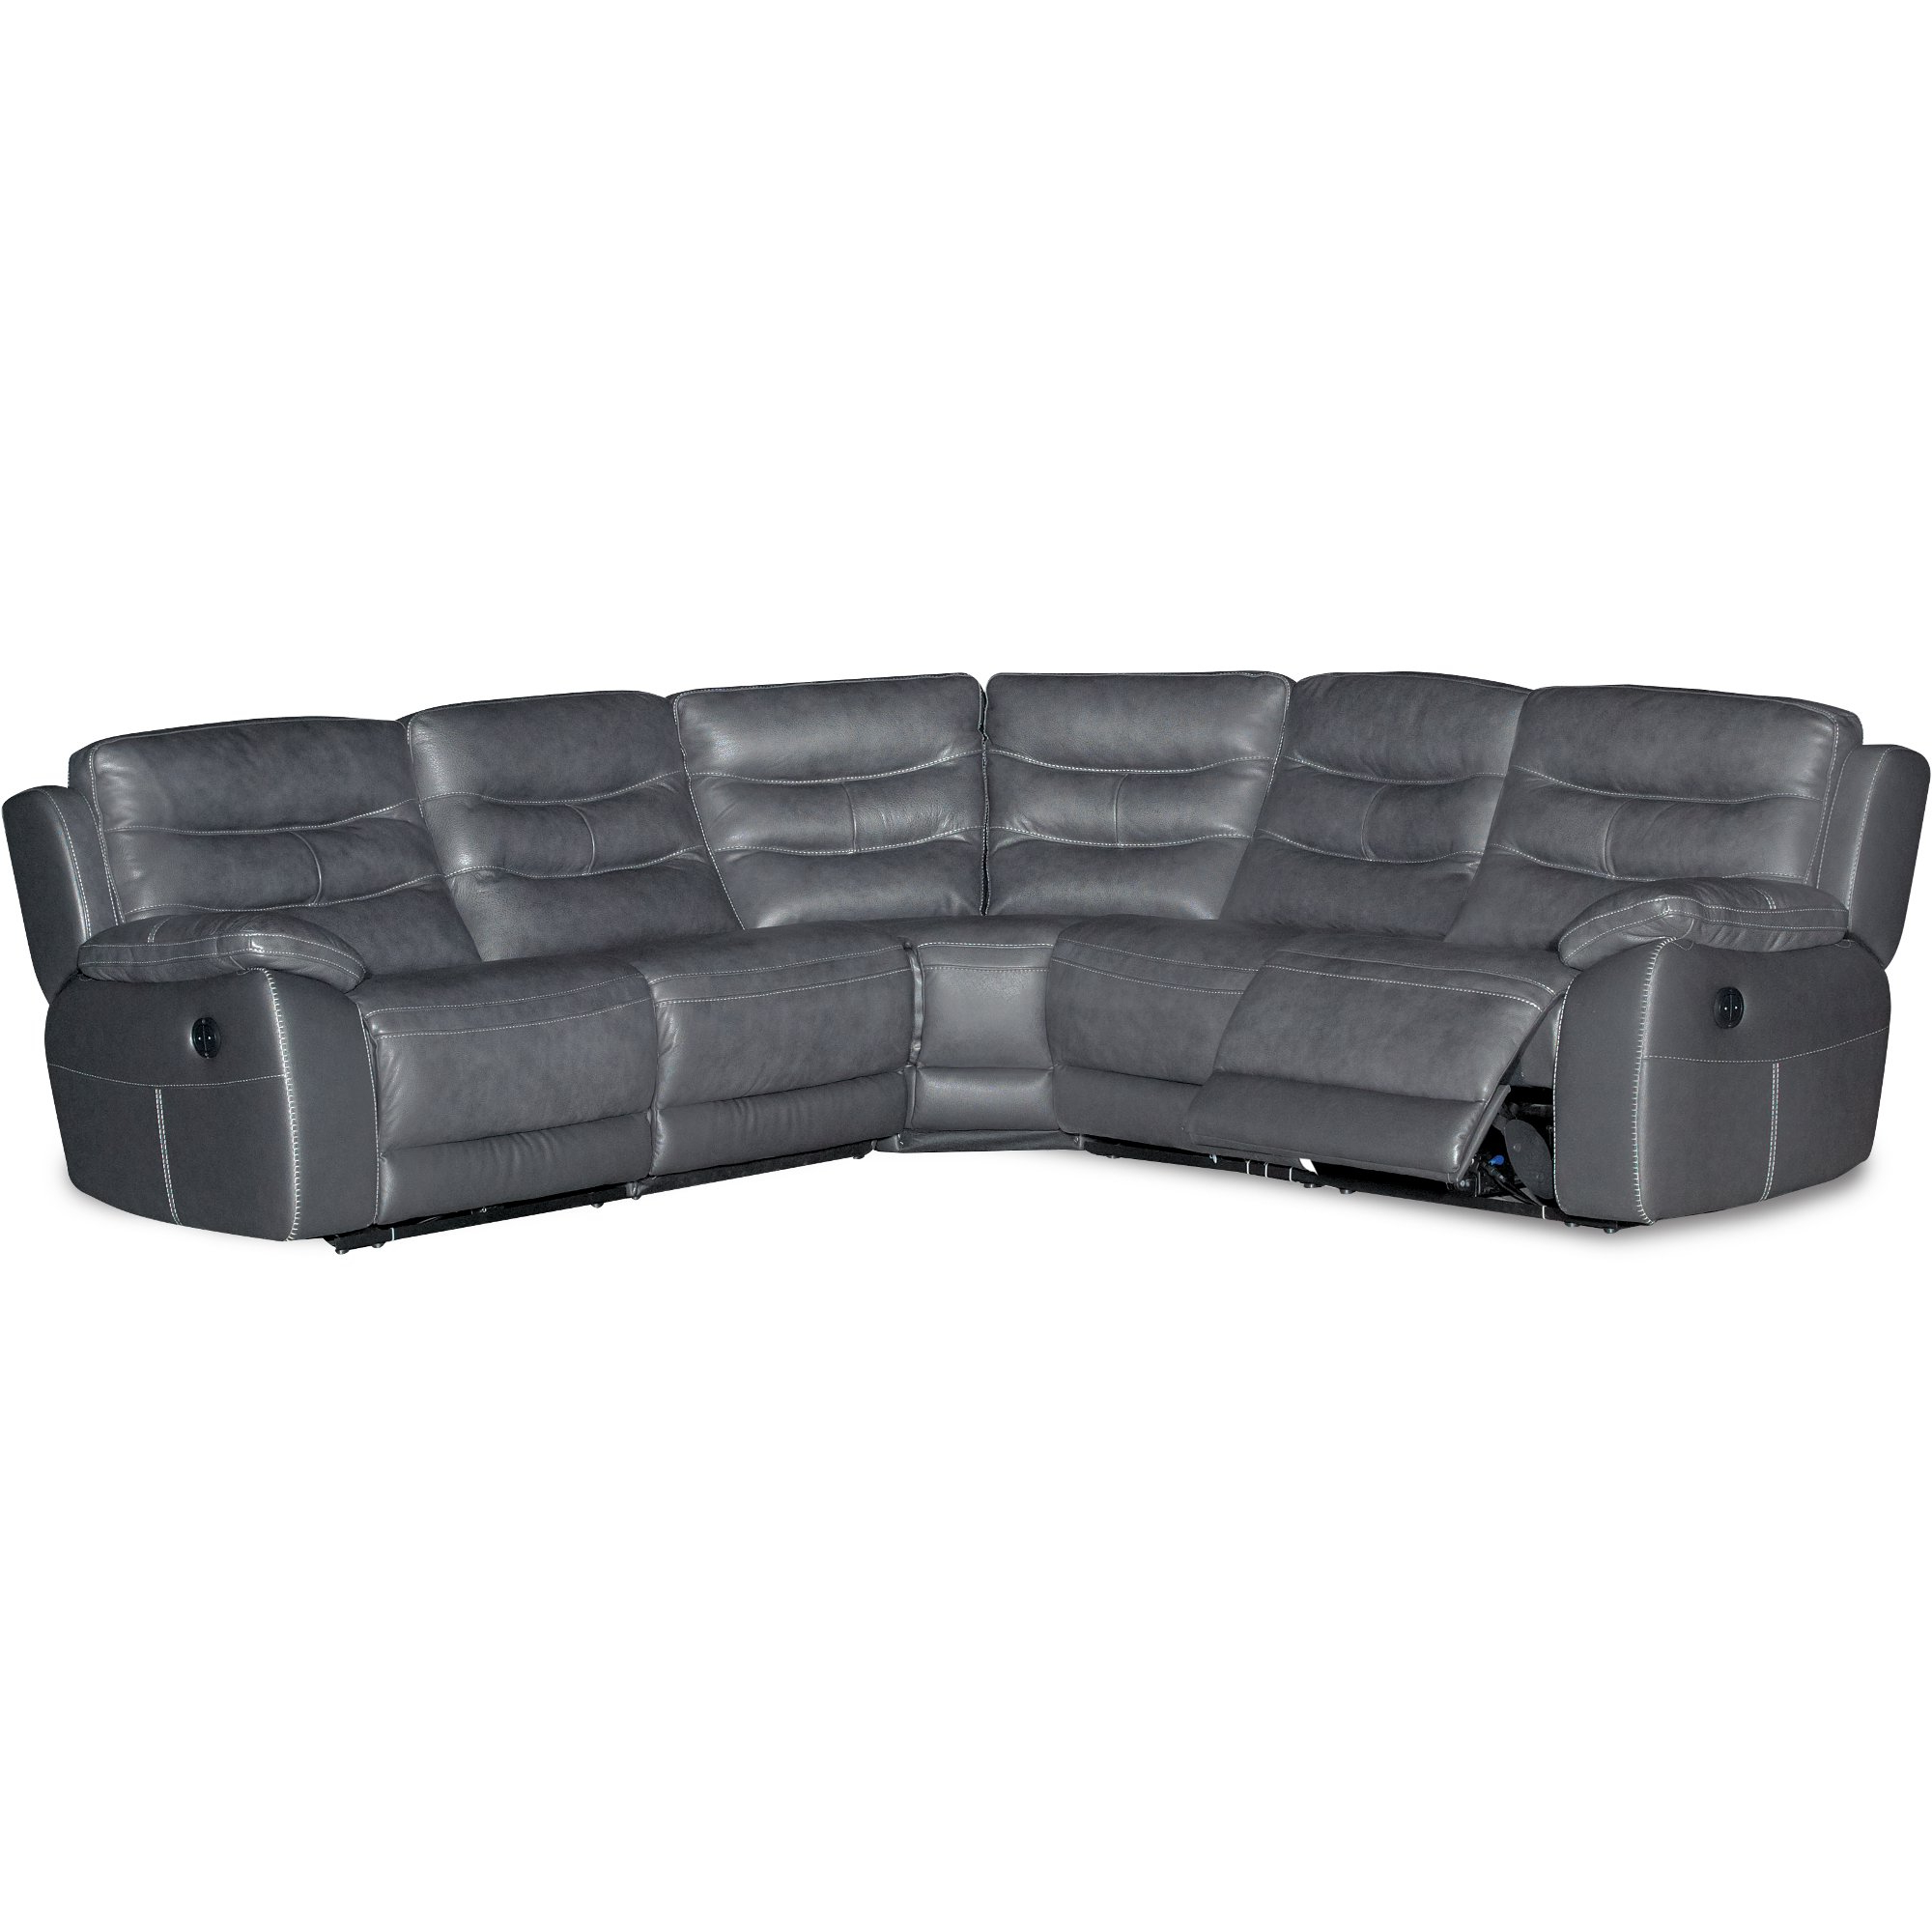 Charcoal Gray 5 Piece Power Reclining Sectional Sofa – Shawn (View 2 of 20)